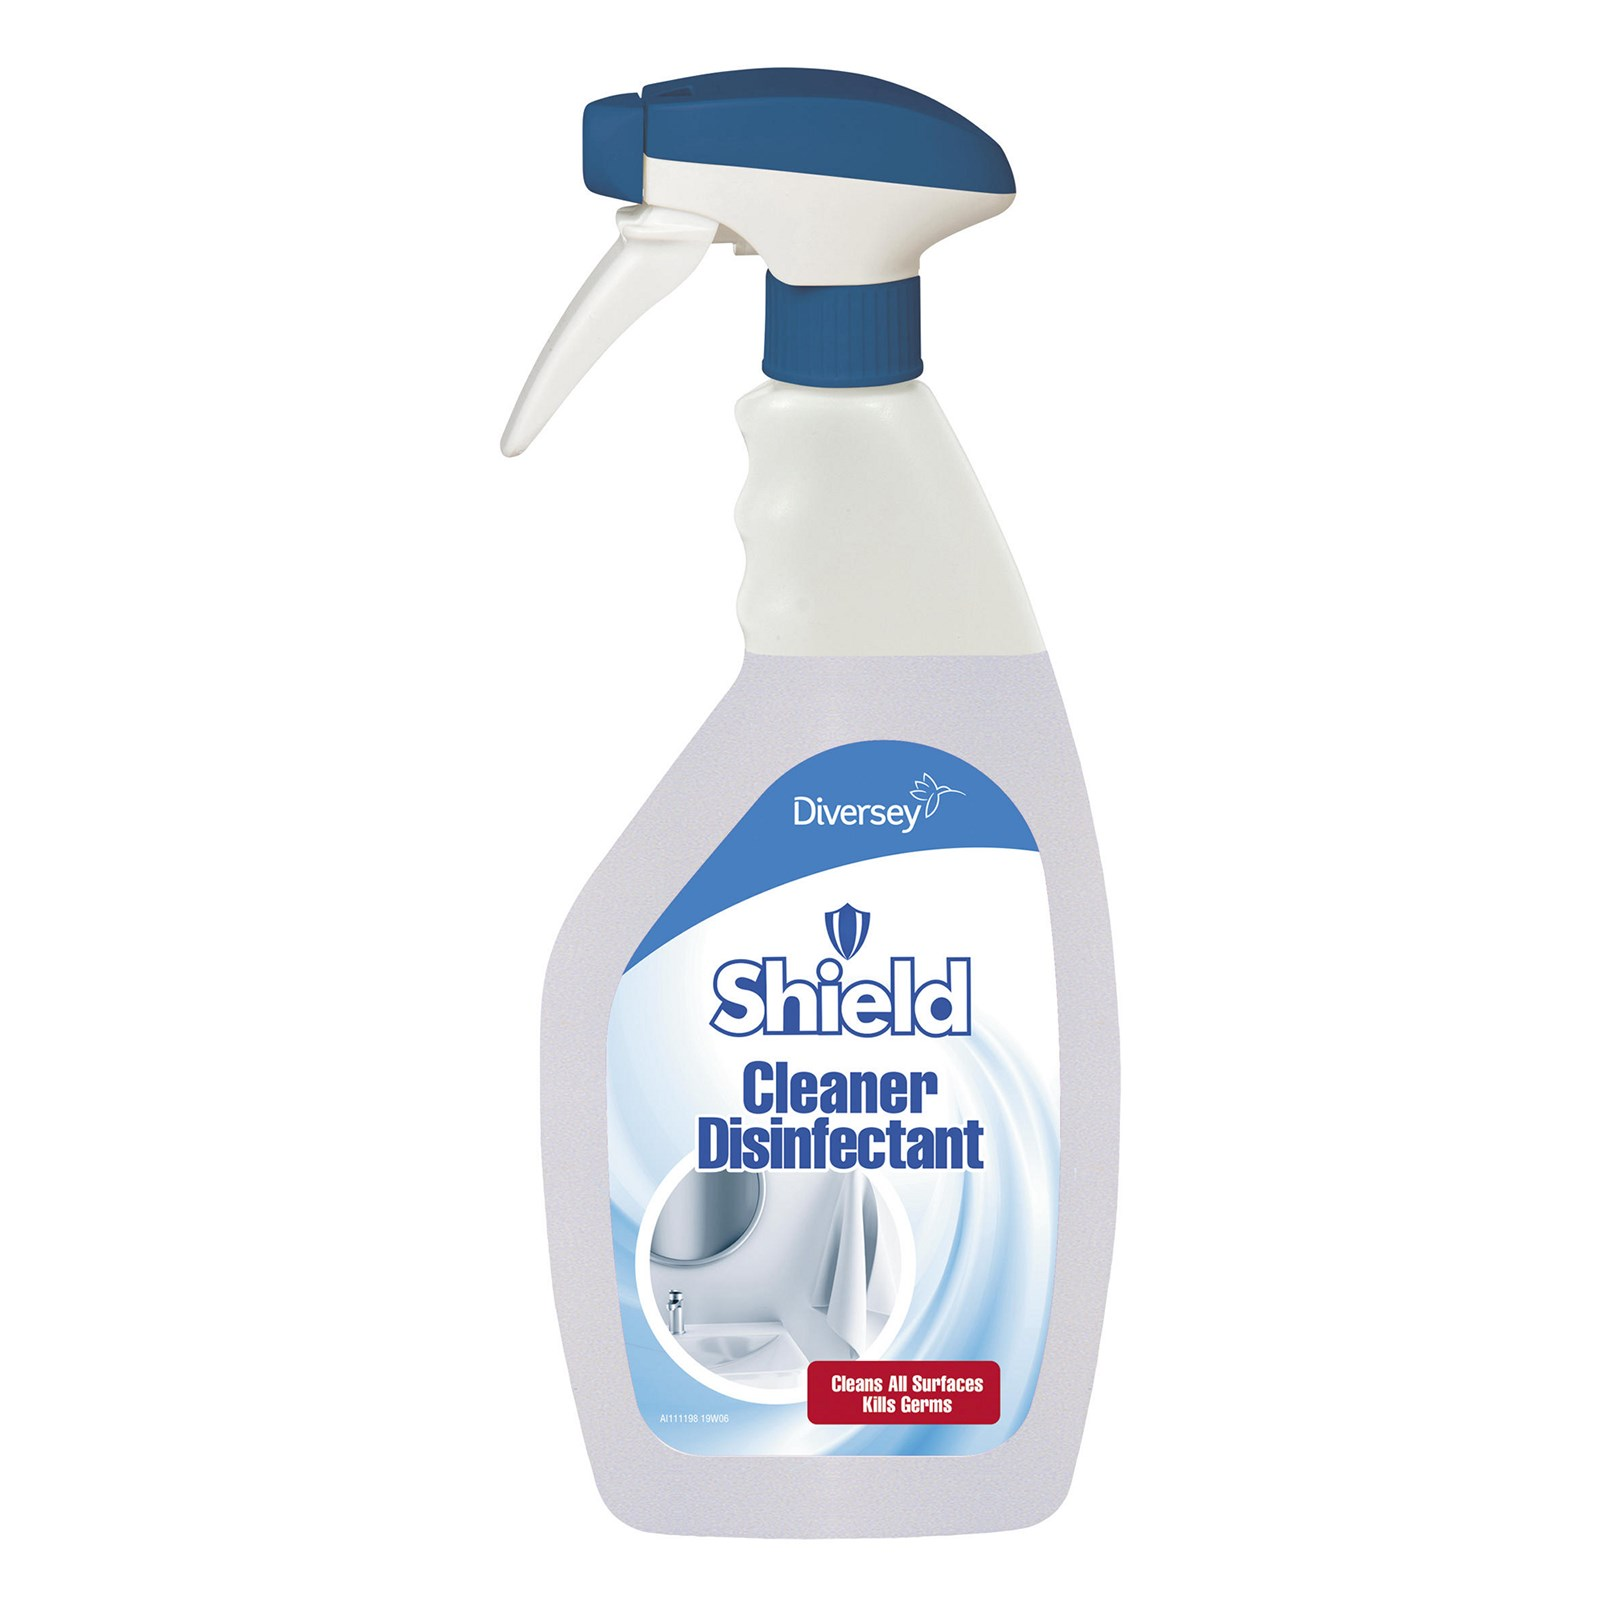 Shield Cleaner Disinfectant Spray